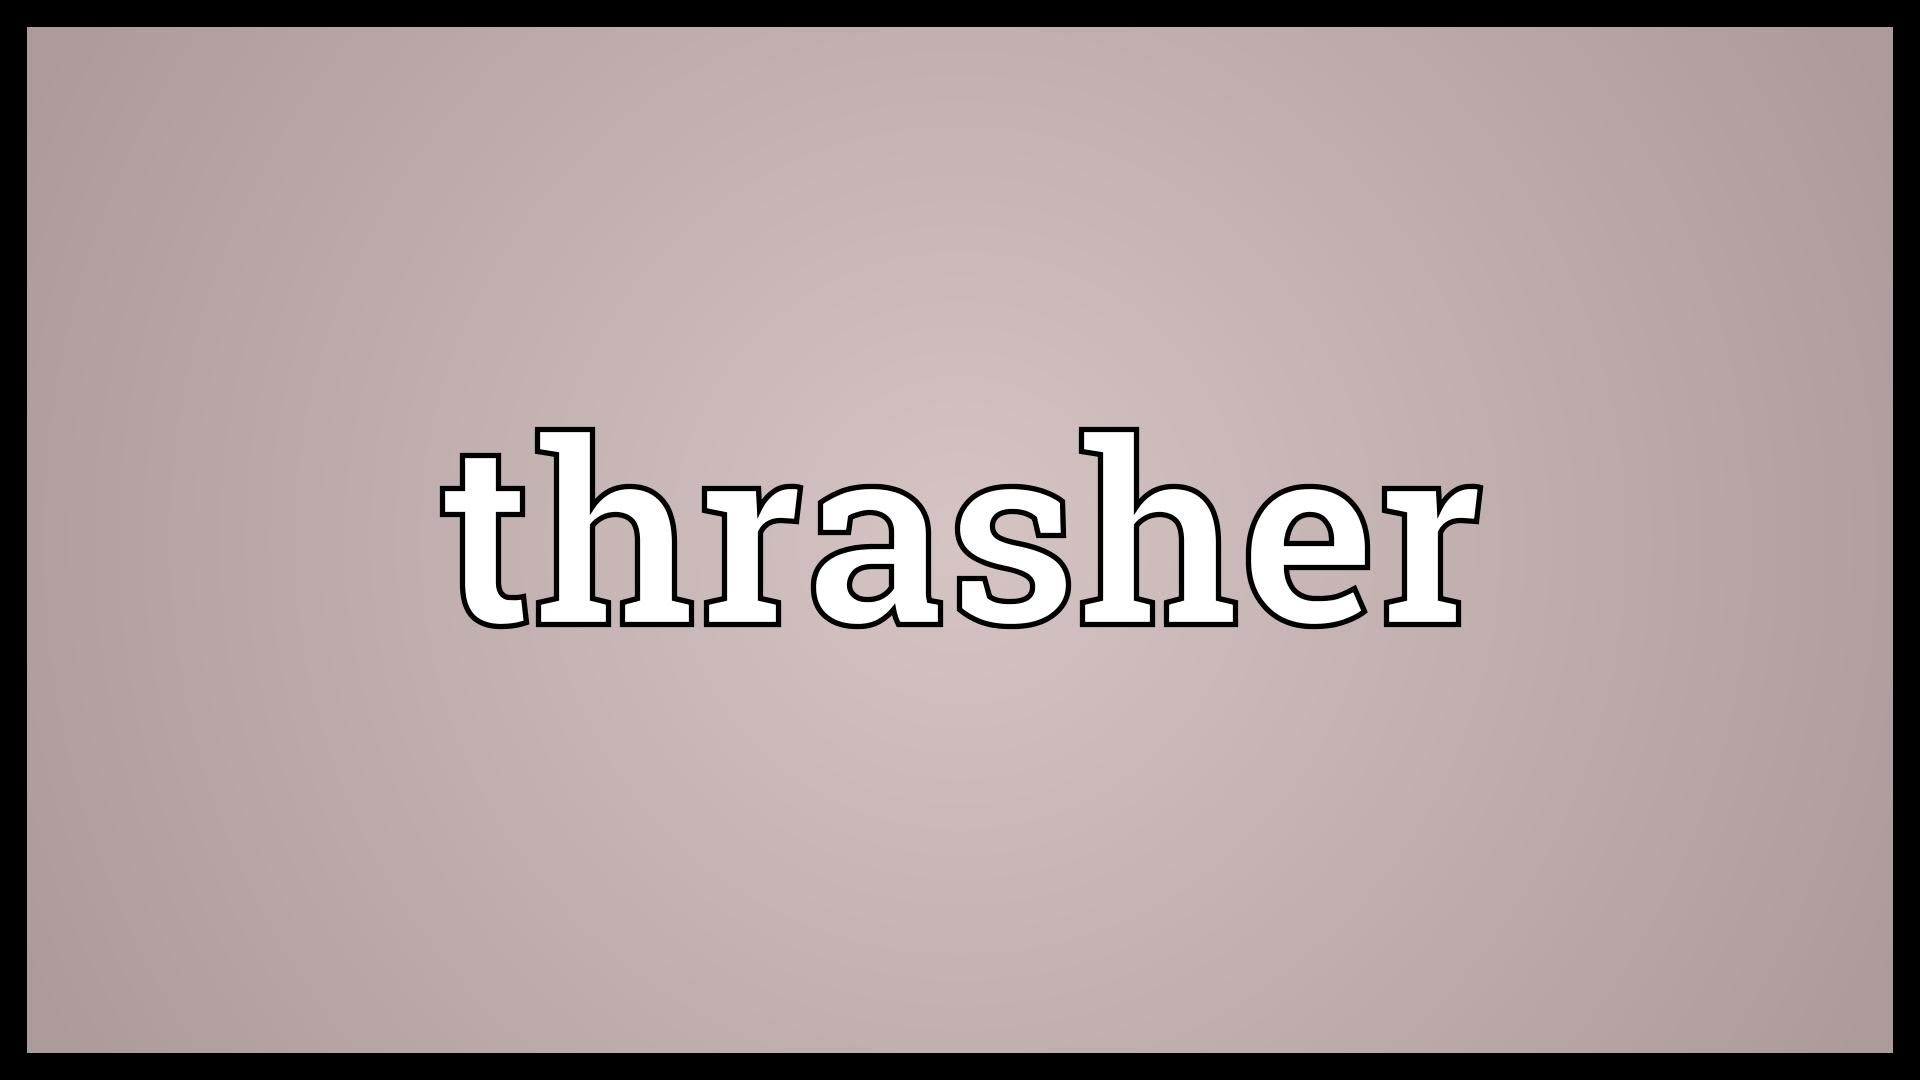 Thrasher Meaning